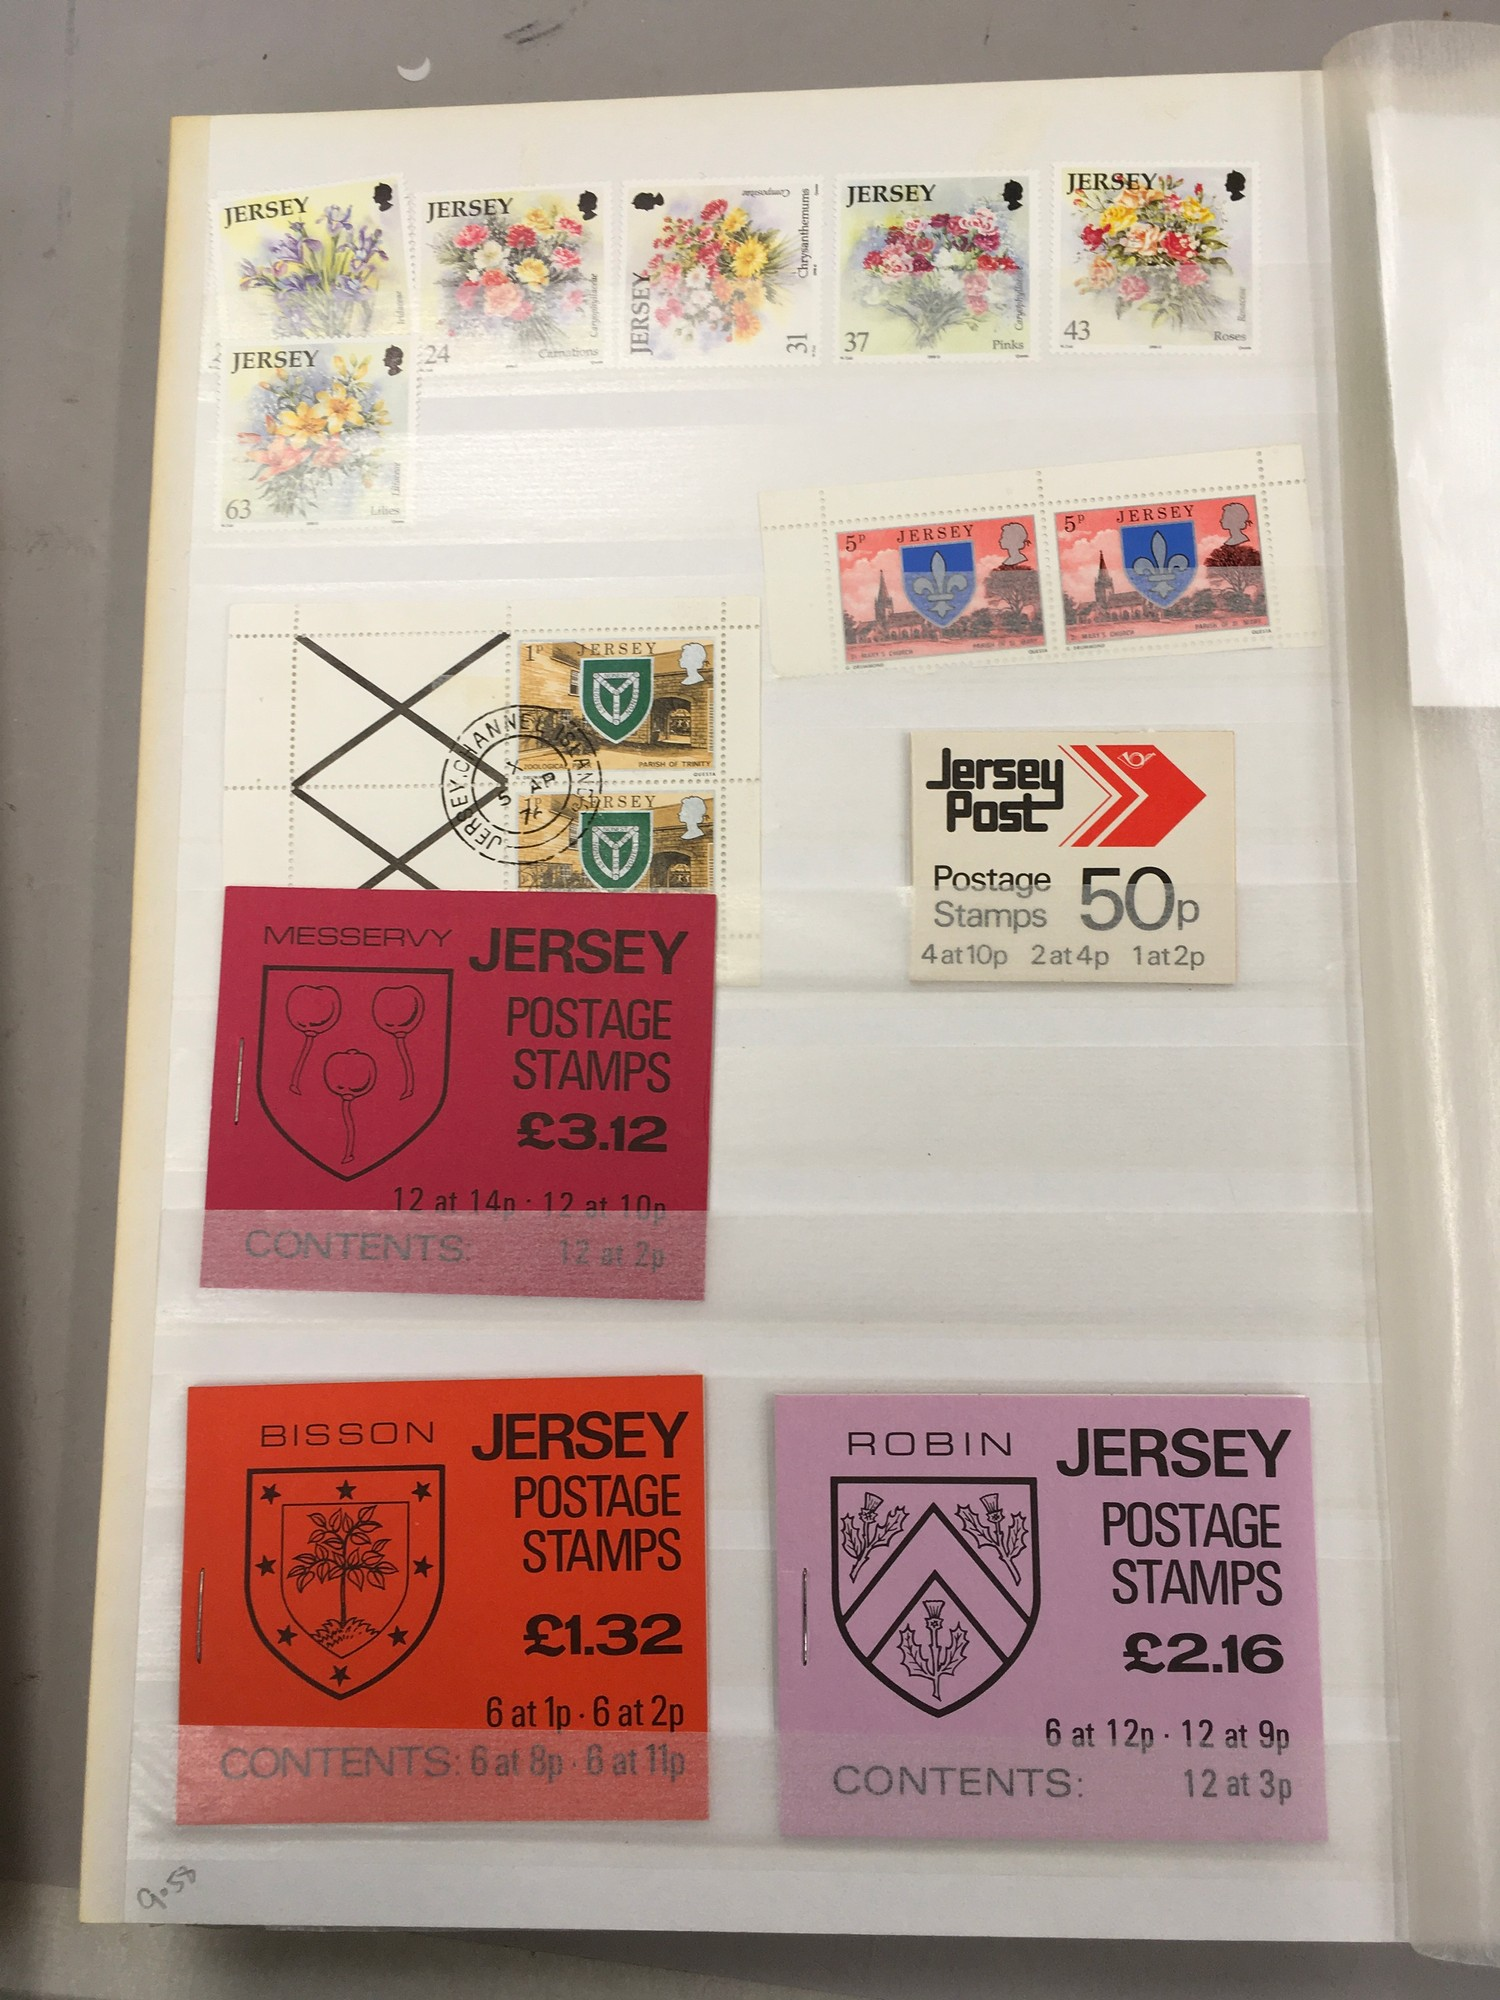 3 x Albums containing Channel Islands, Jersey Guernsey and Alderney over £800 in mint stamps. - Image 13 of 21